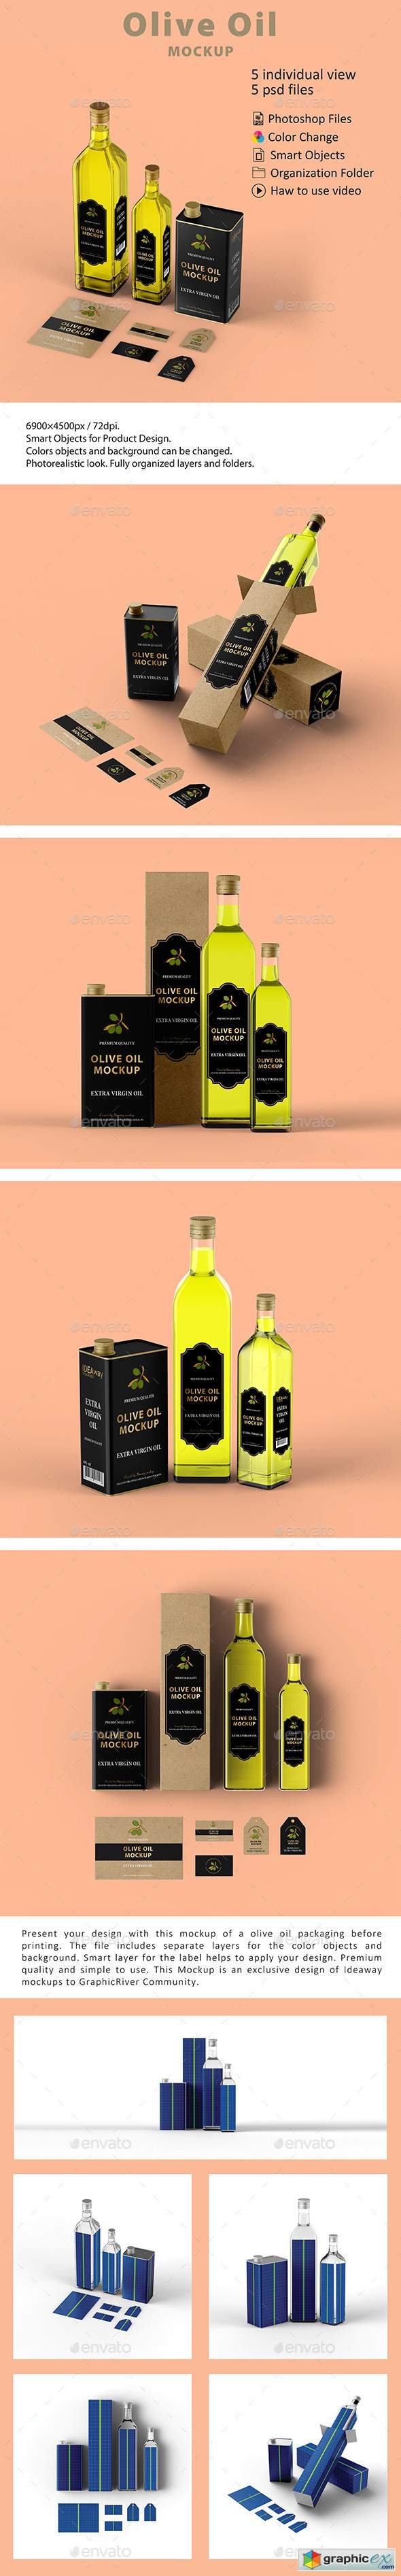 Olive Oil Packaging Mockup